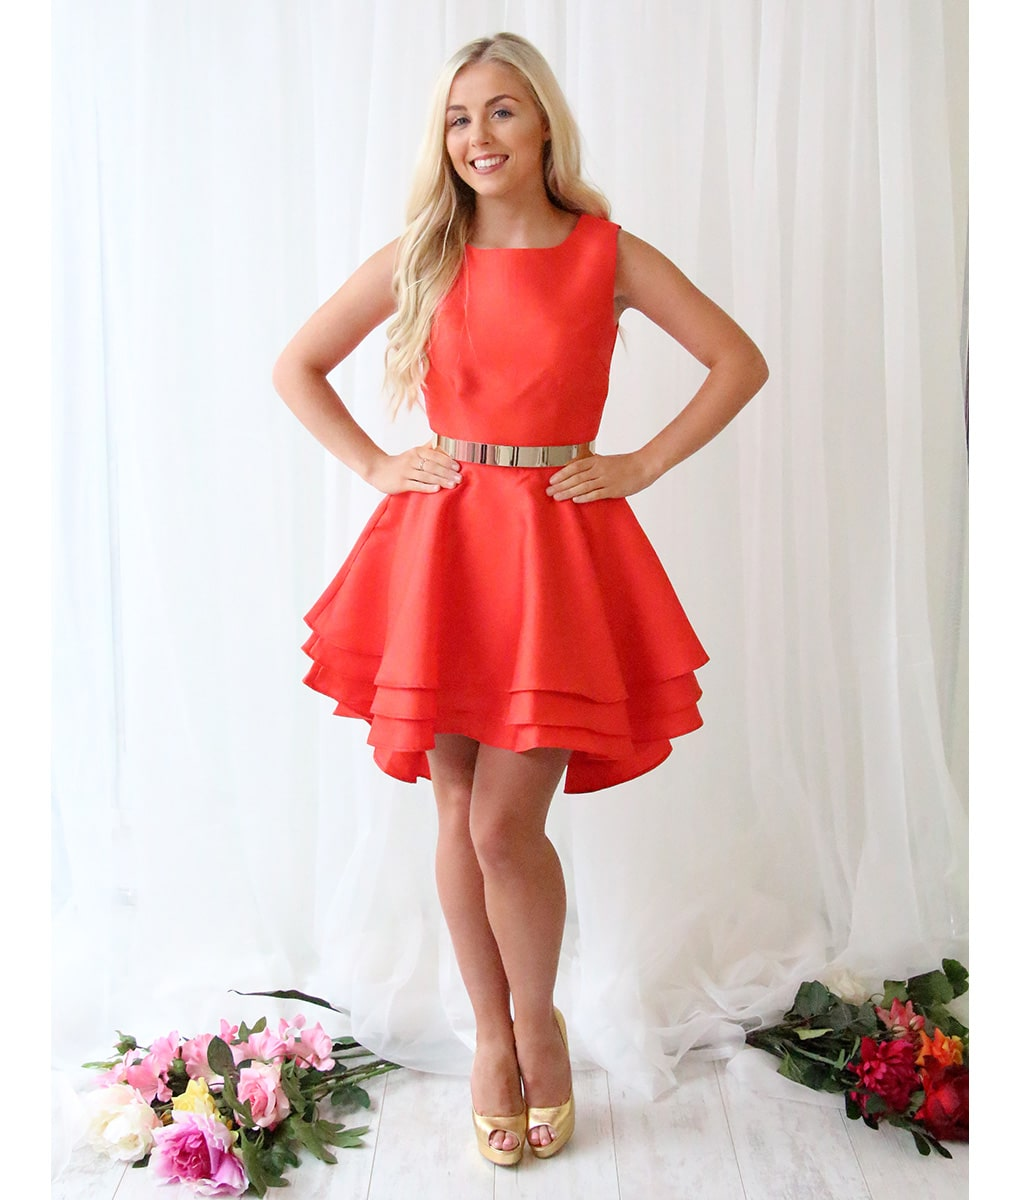 Alila-Bright-red-ruffle-hilo-dress-City-Goddess-with-belt